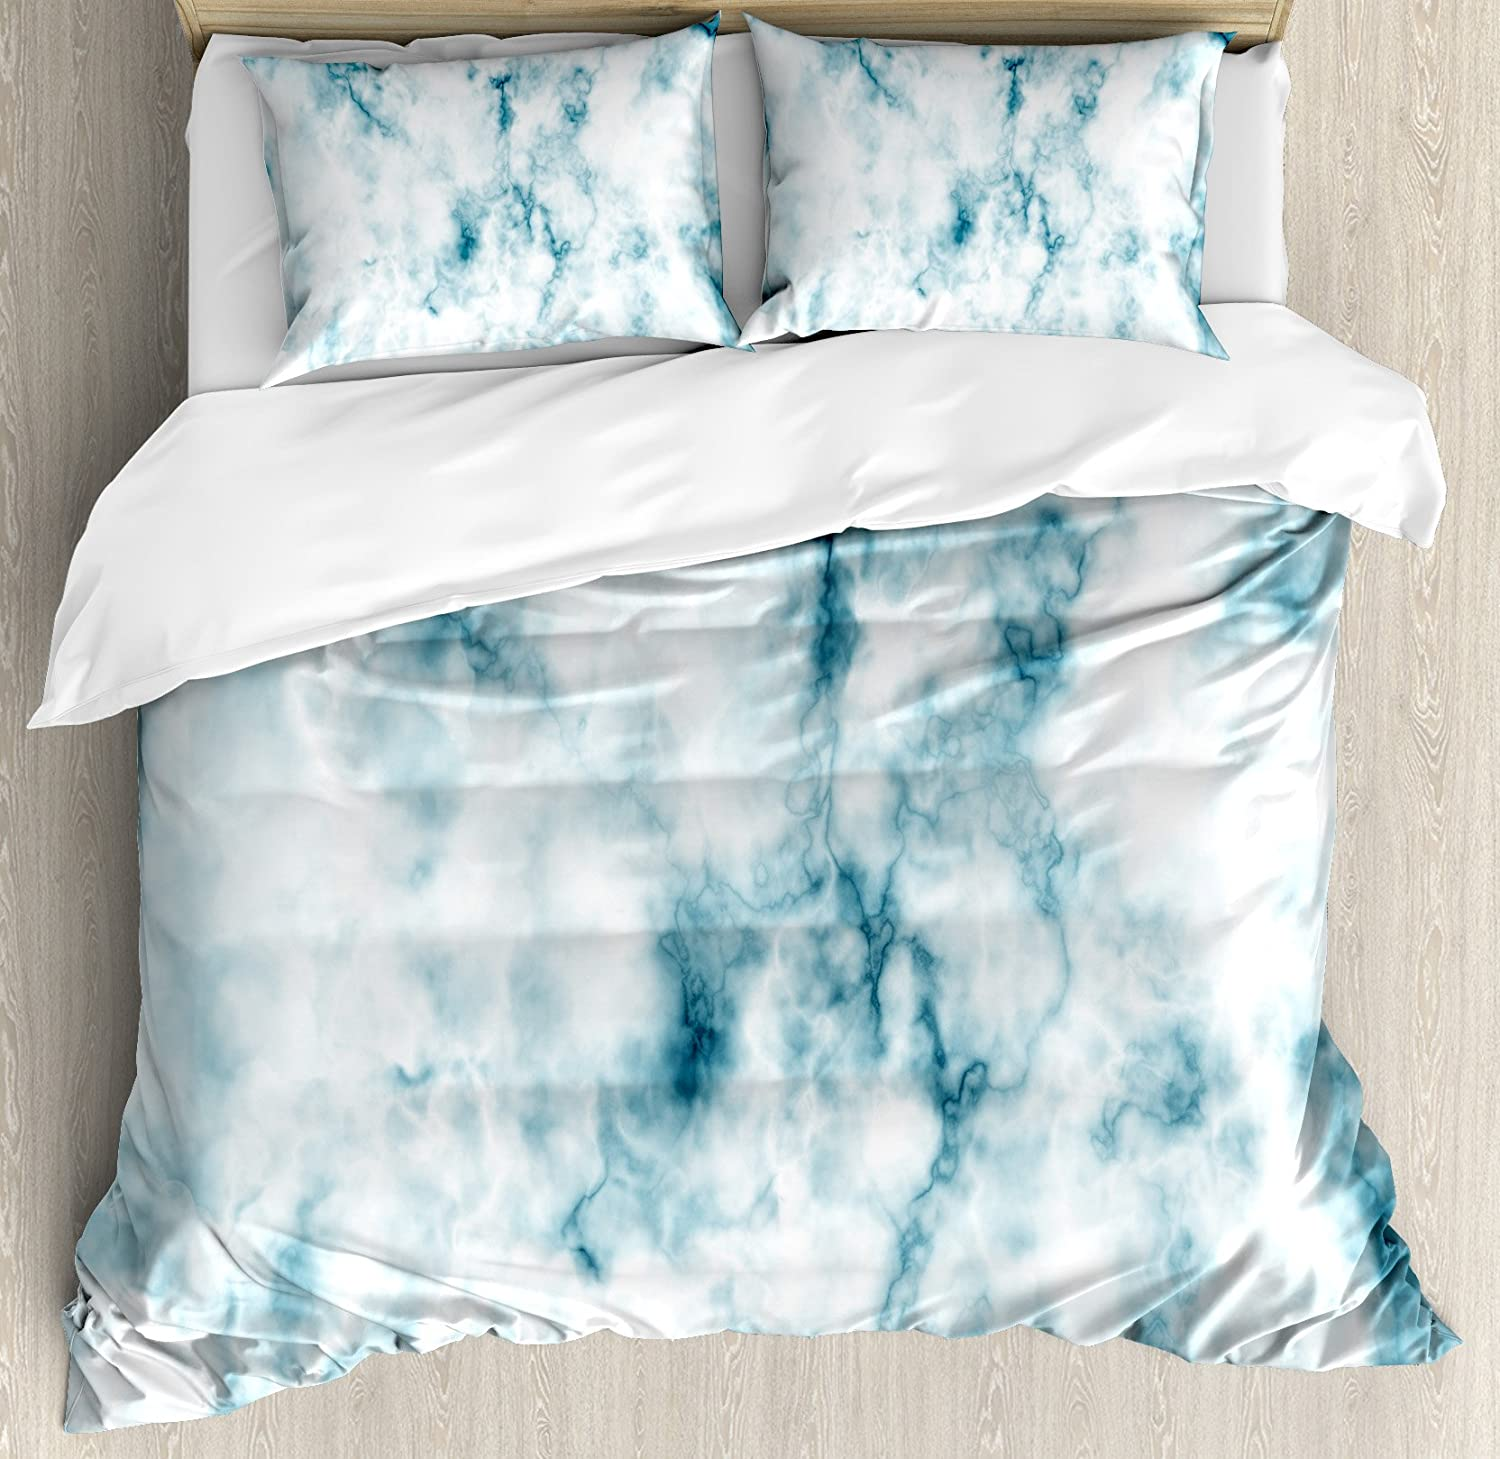 Ambesonne Nature Duvet Cover Set, Fluffy Cloud Skyline Like Marble Motif with Grunge and Retro Features Art Image Print, Decorative 3 Piece Bedding Set with 2 Pillow Shams, King Size, White Turquoise